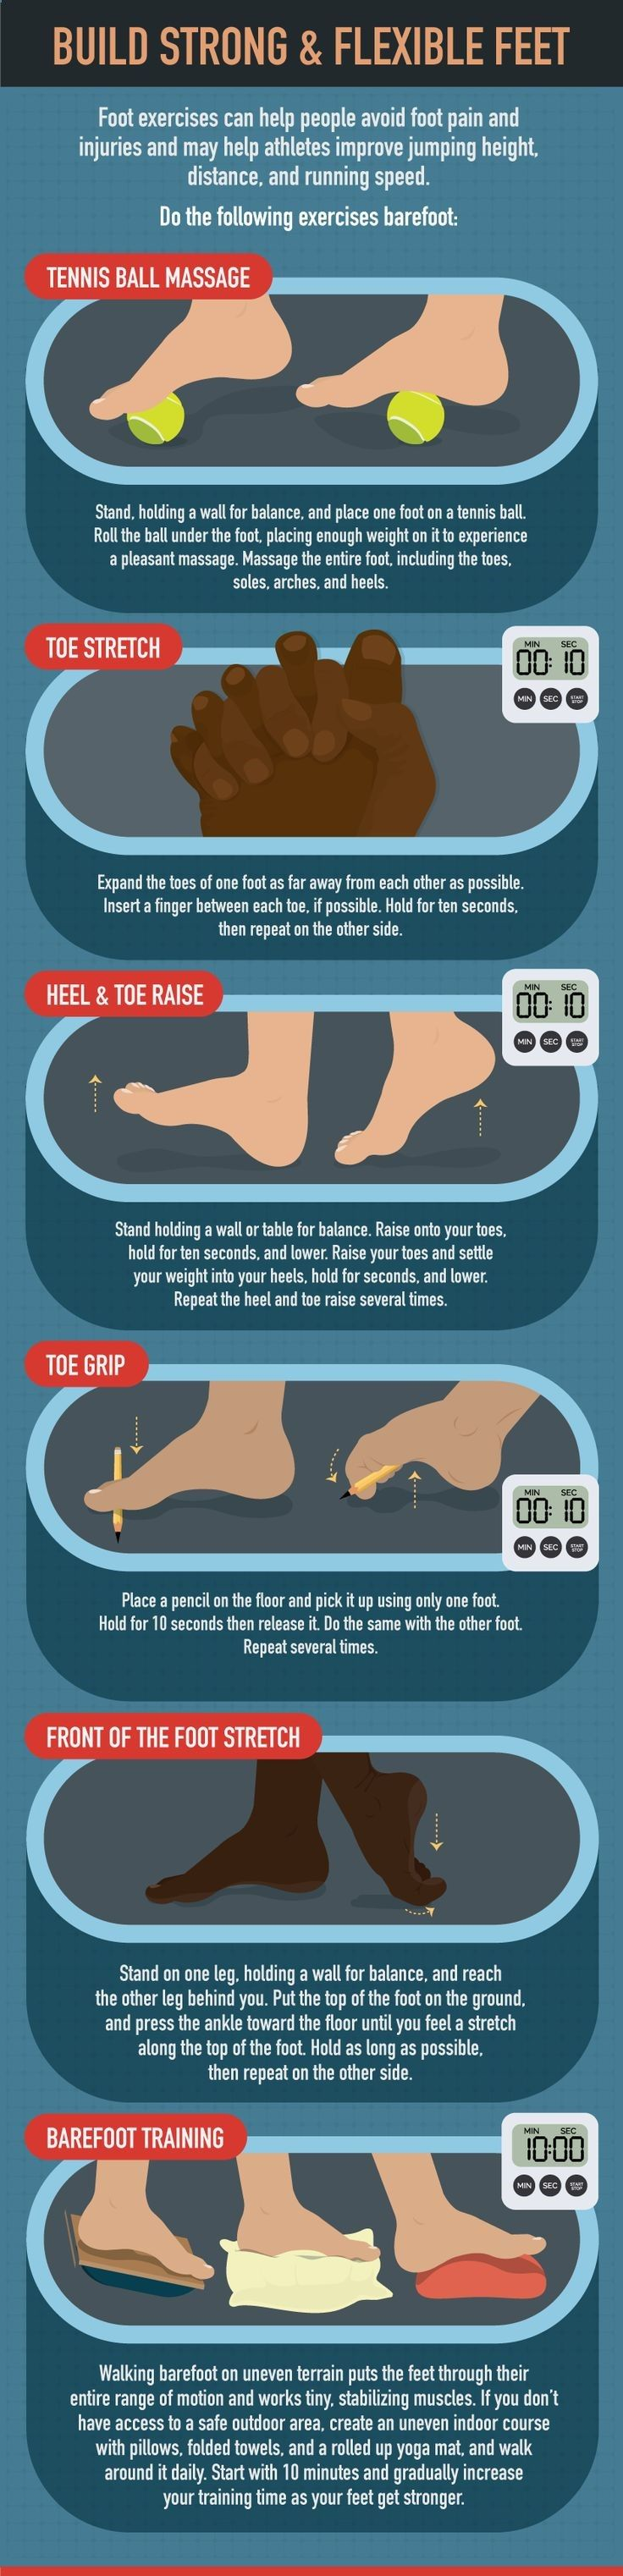 Build Strong Flexible Feet - How to Treat Your Feet